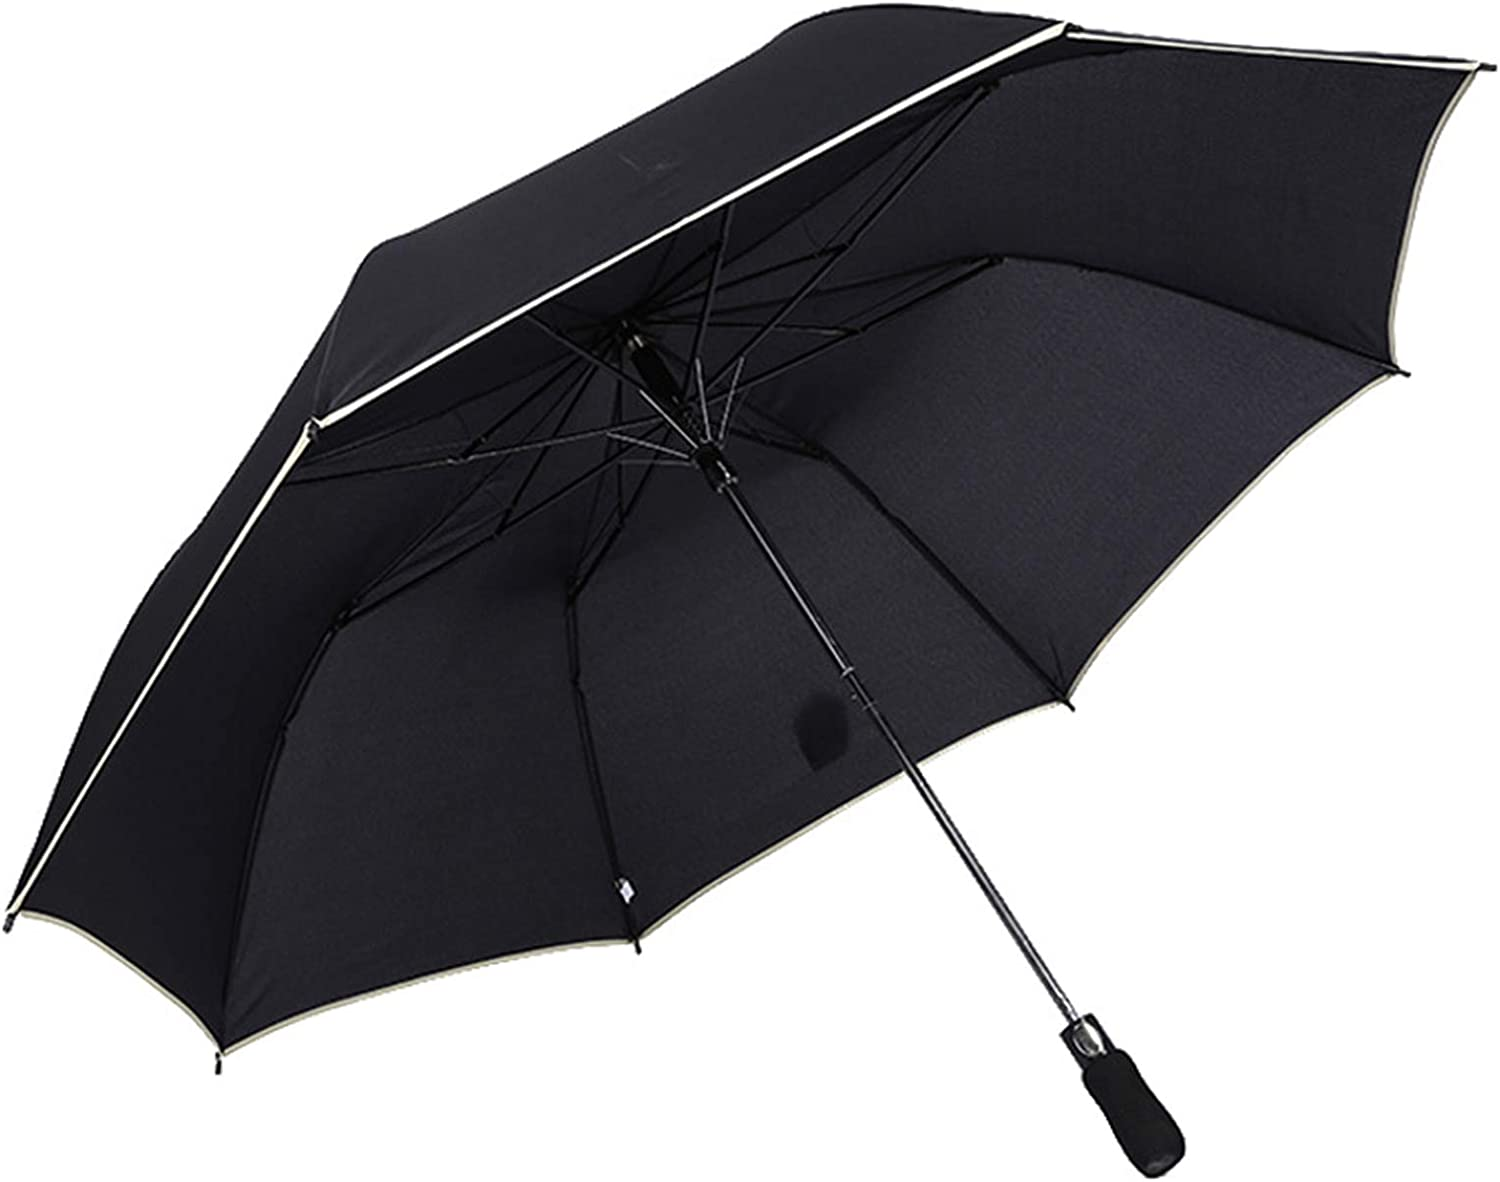 WWDKF Oversized Cash In a popularity special price Automatic Golf Umbrella Sun Protect with Edging